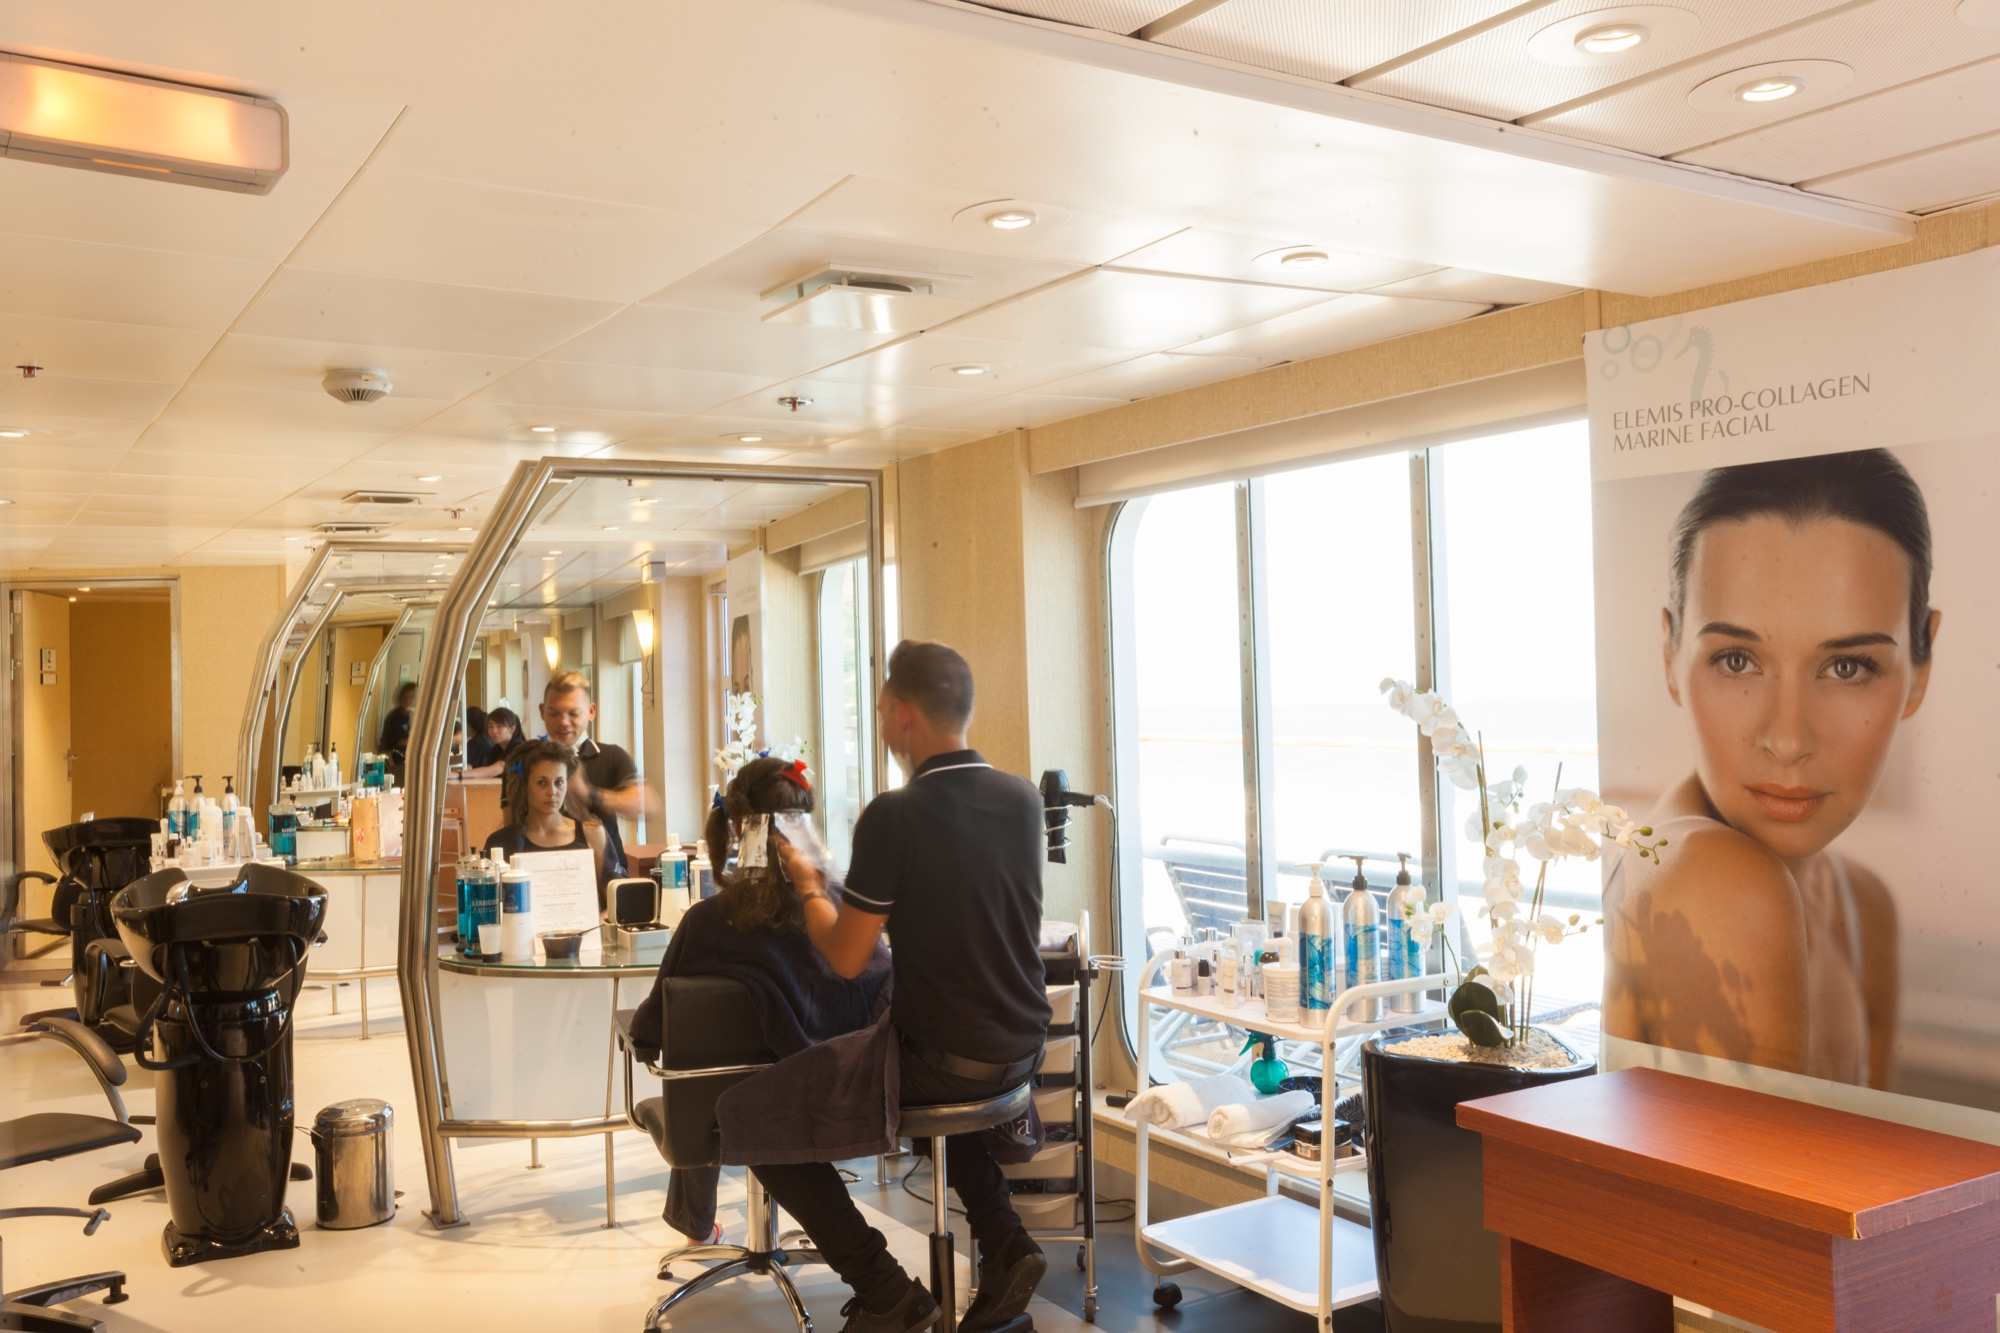 Pullmantur Zenith Interior Beauty Salon 1.jpg